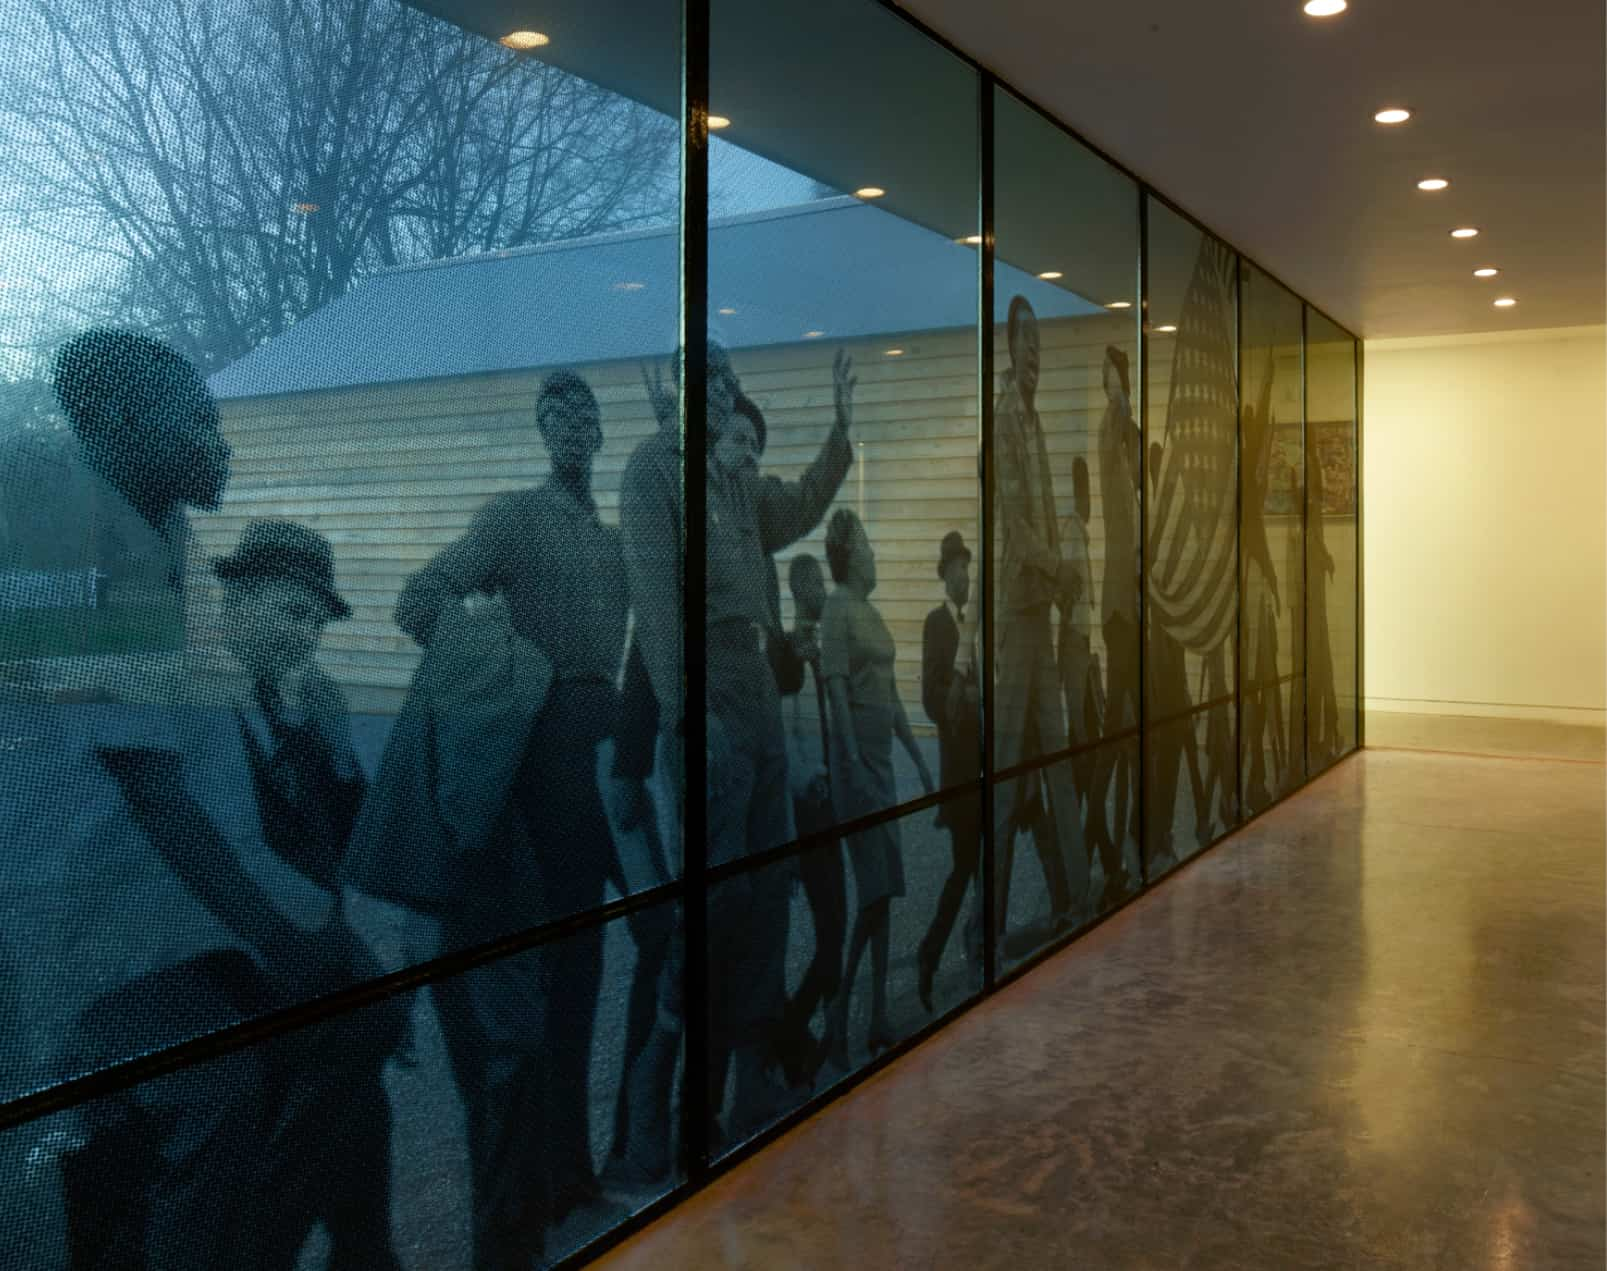 view of hallway connecting homes that shows civil rights marchers on glass